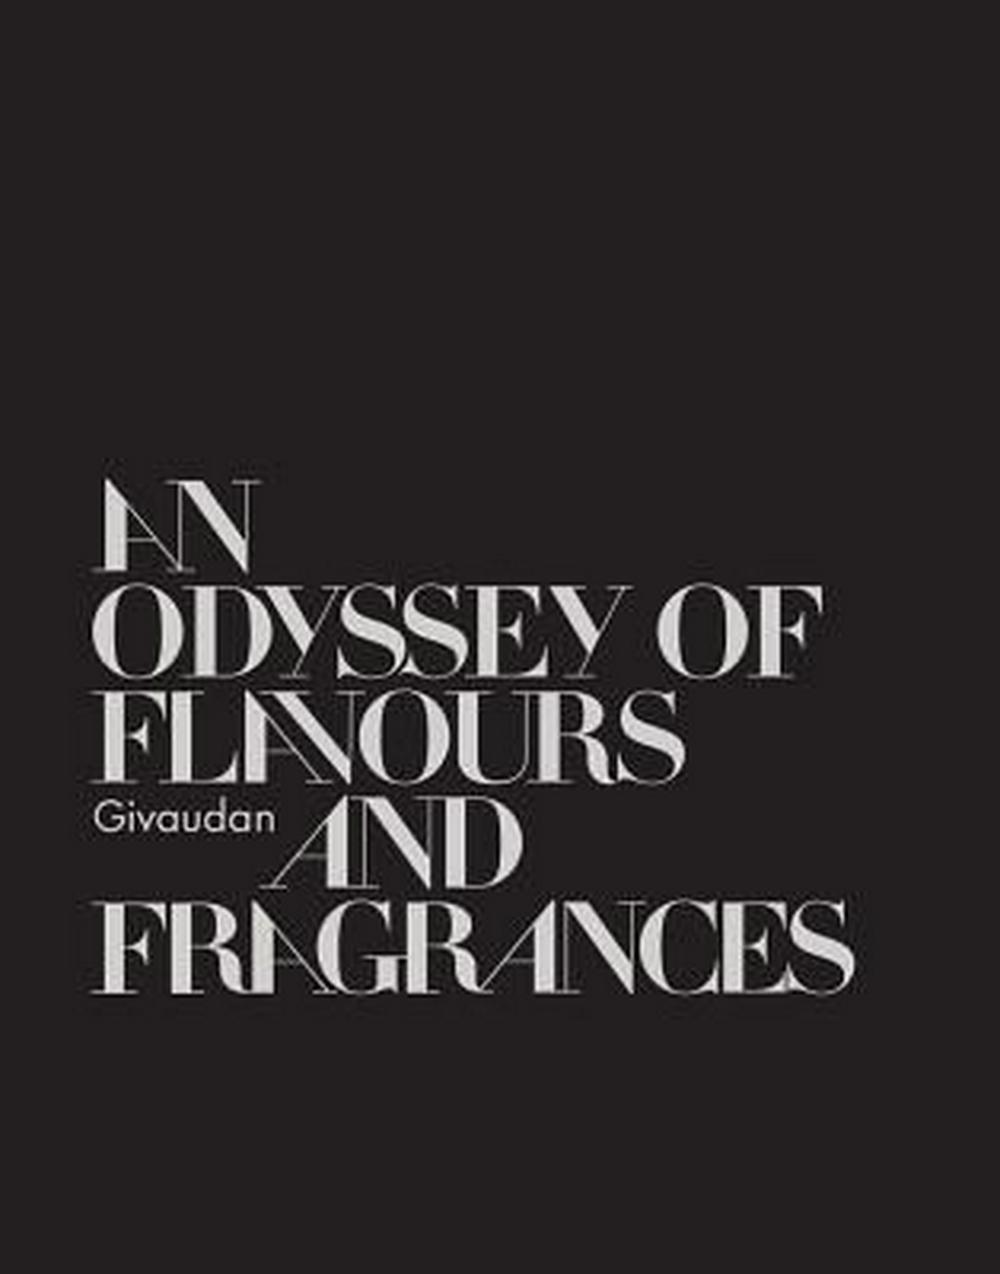 GivaudanAn Odyssey of Perfumes and Flavors by Percy Kemp,Denis Dailleux,Lili Roze, ISBN: 9781419721472